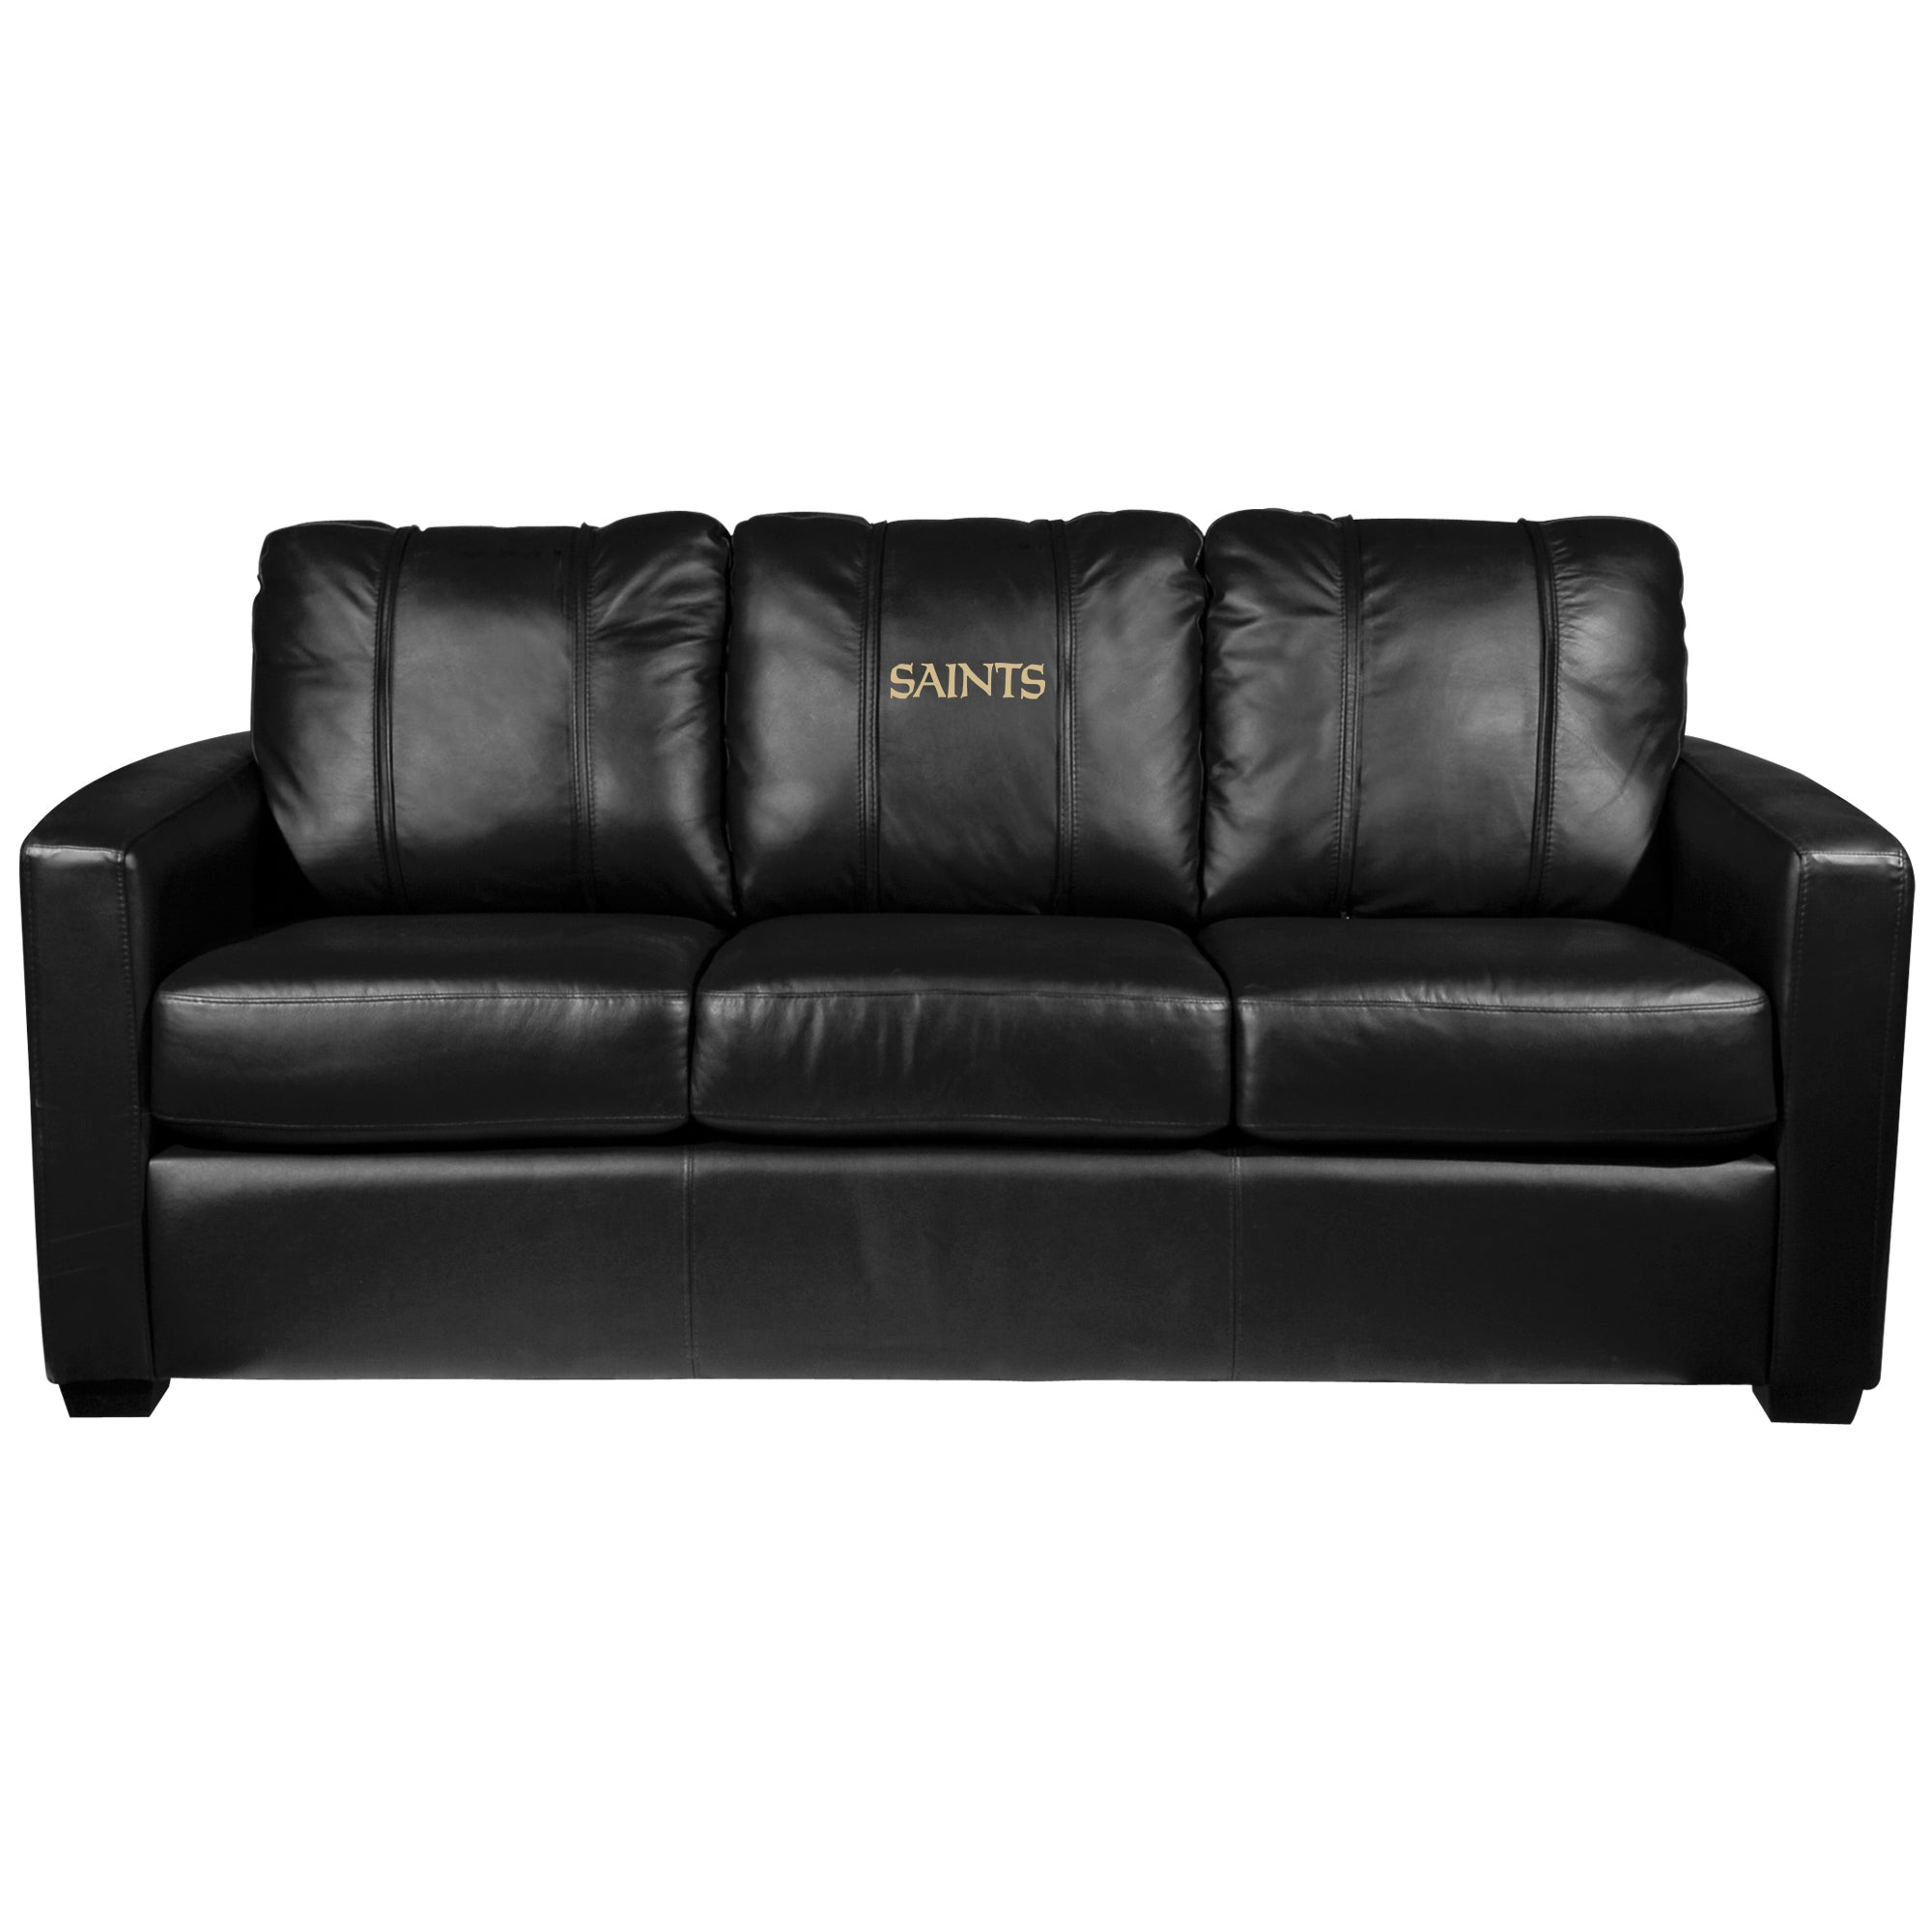 Silver Sofa with  New Orleans Saints Secondary Logo